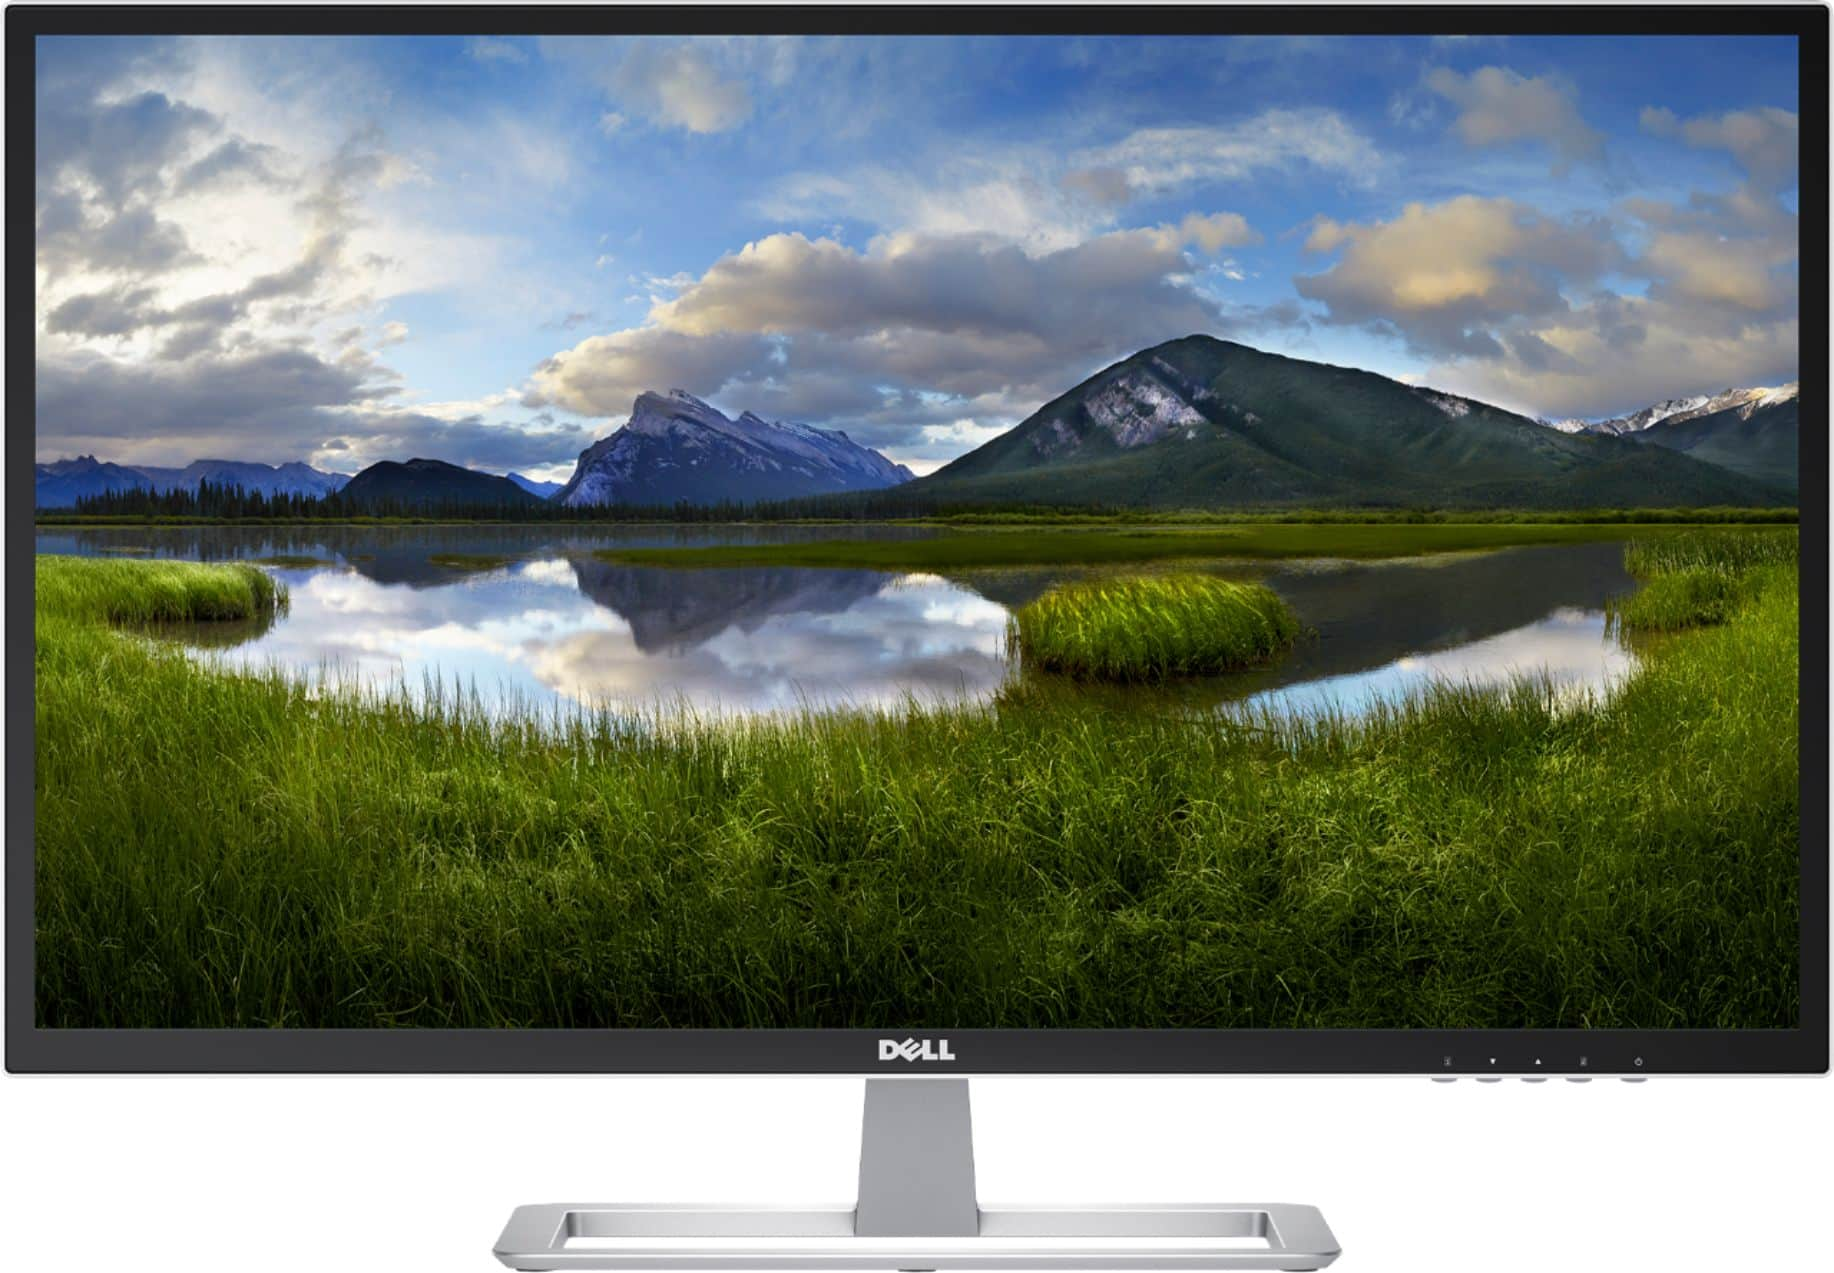 """Dell 32"""" IPS monitor for $165 at Bestbuy $164.99"""